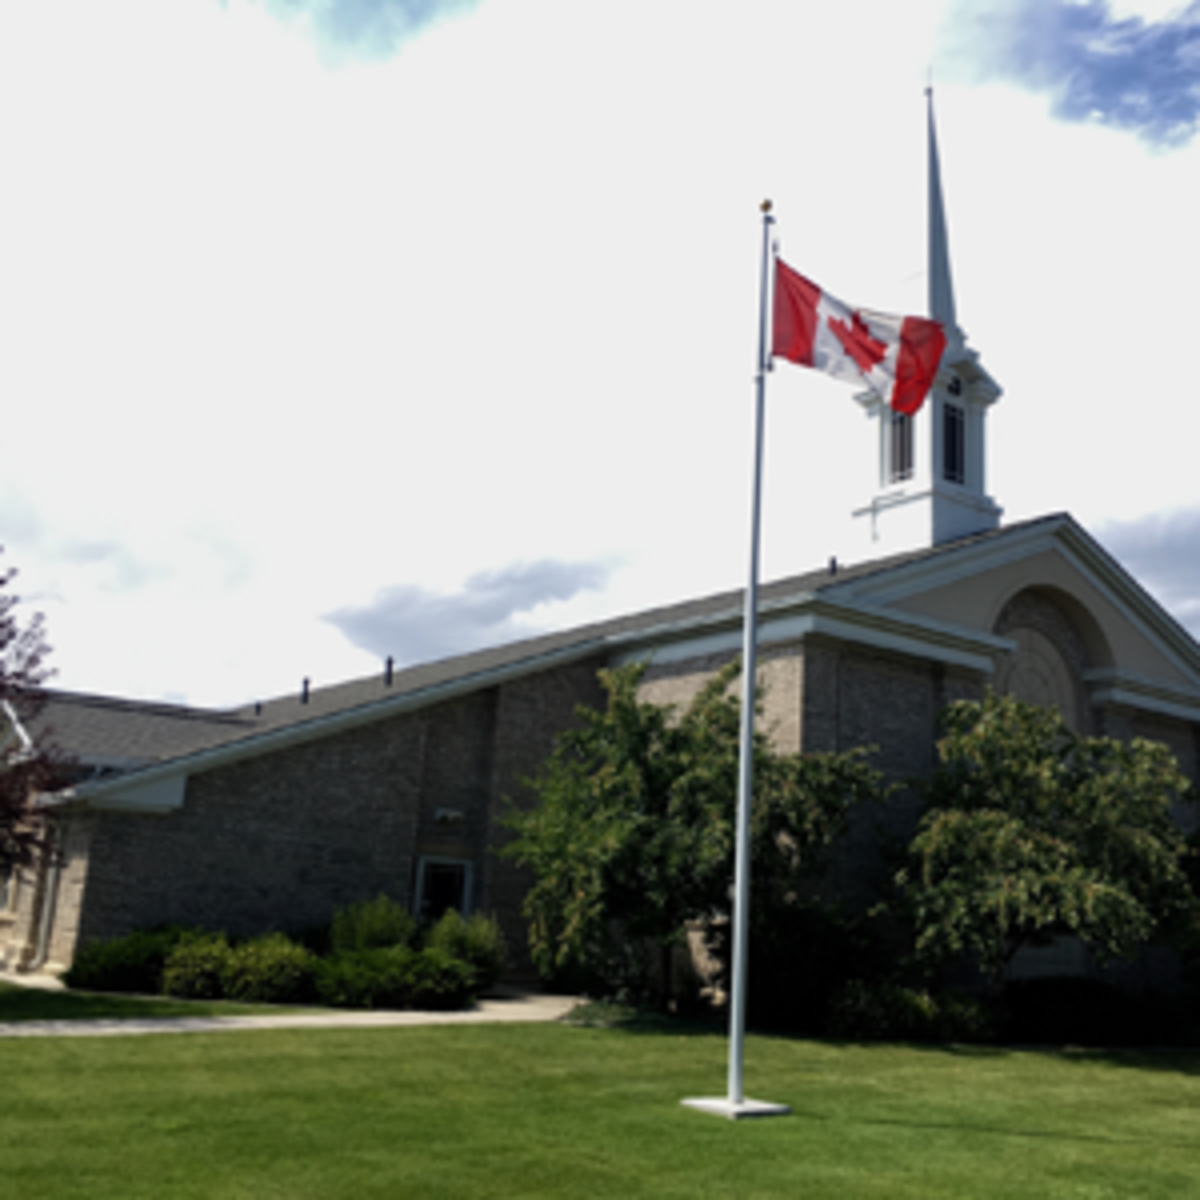 Lethbridge Alberta West Stake Centre